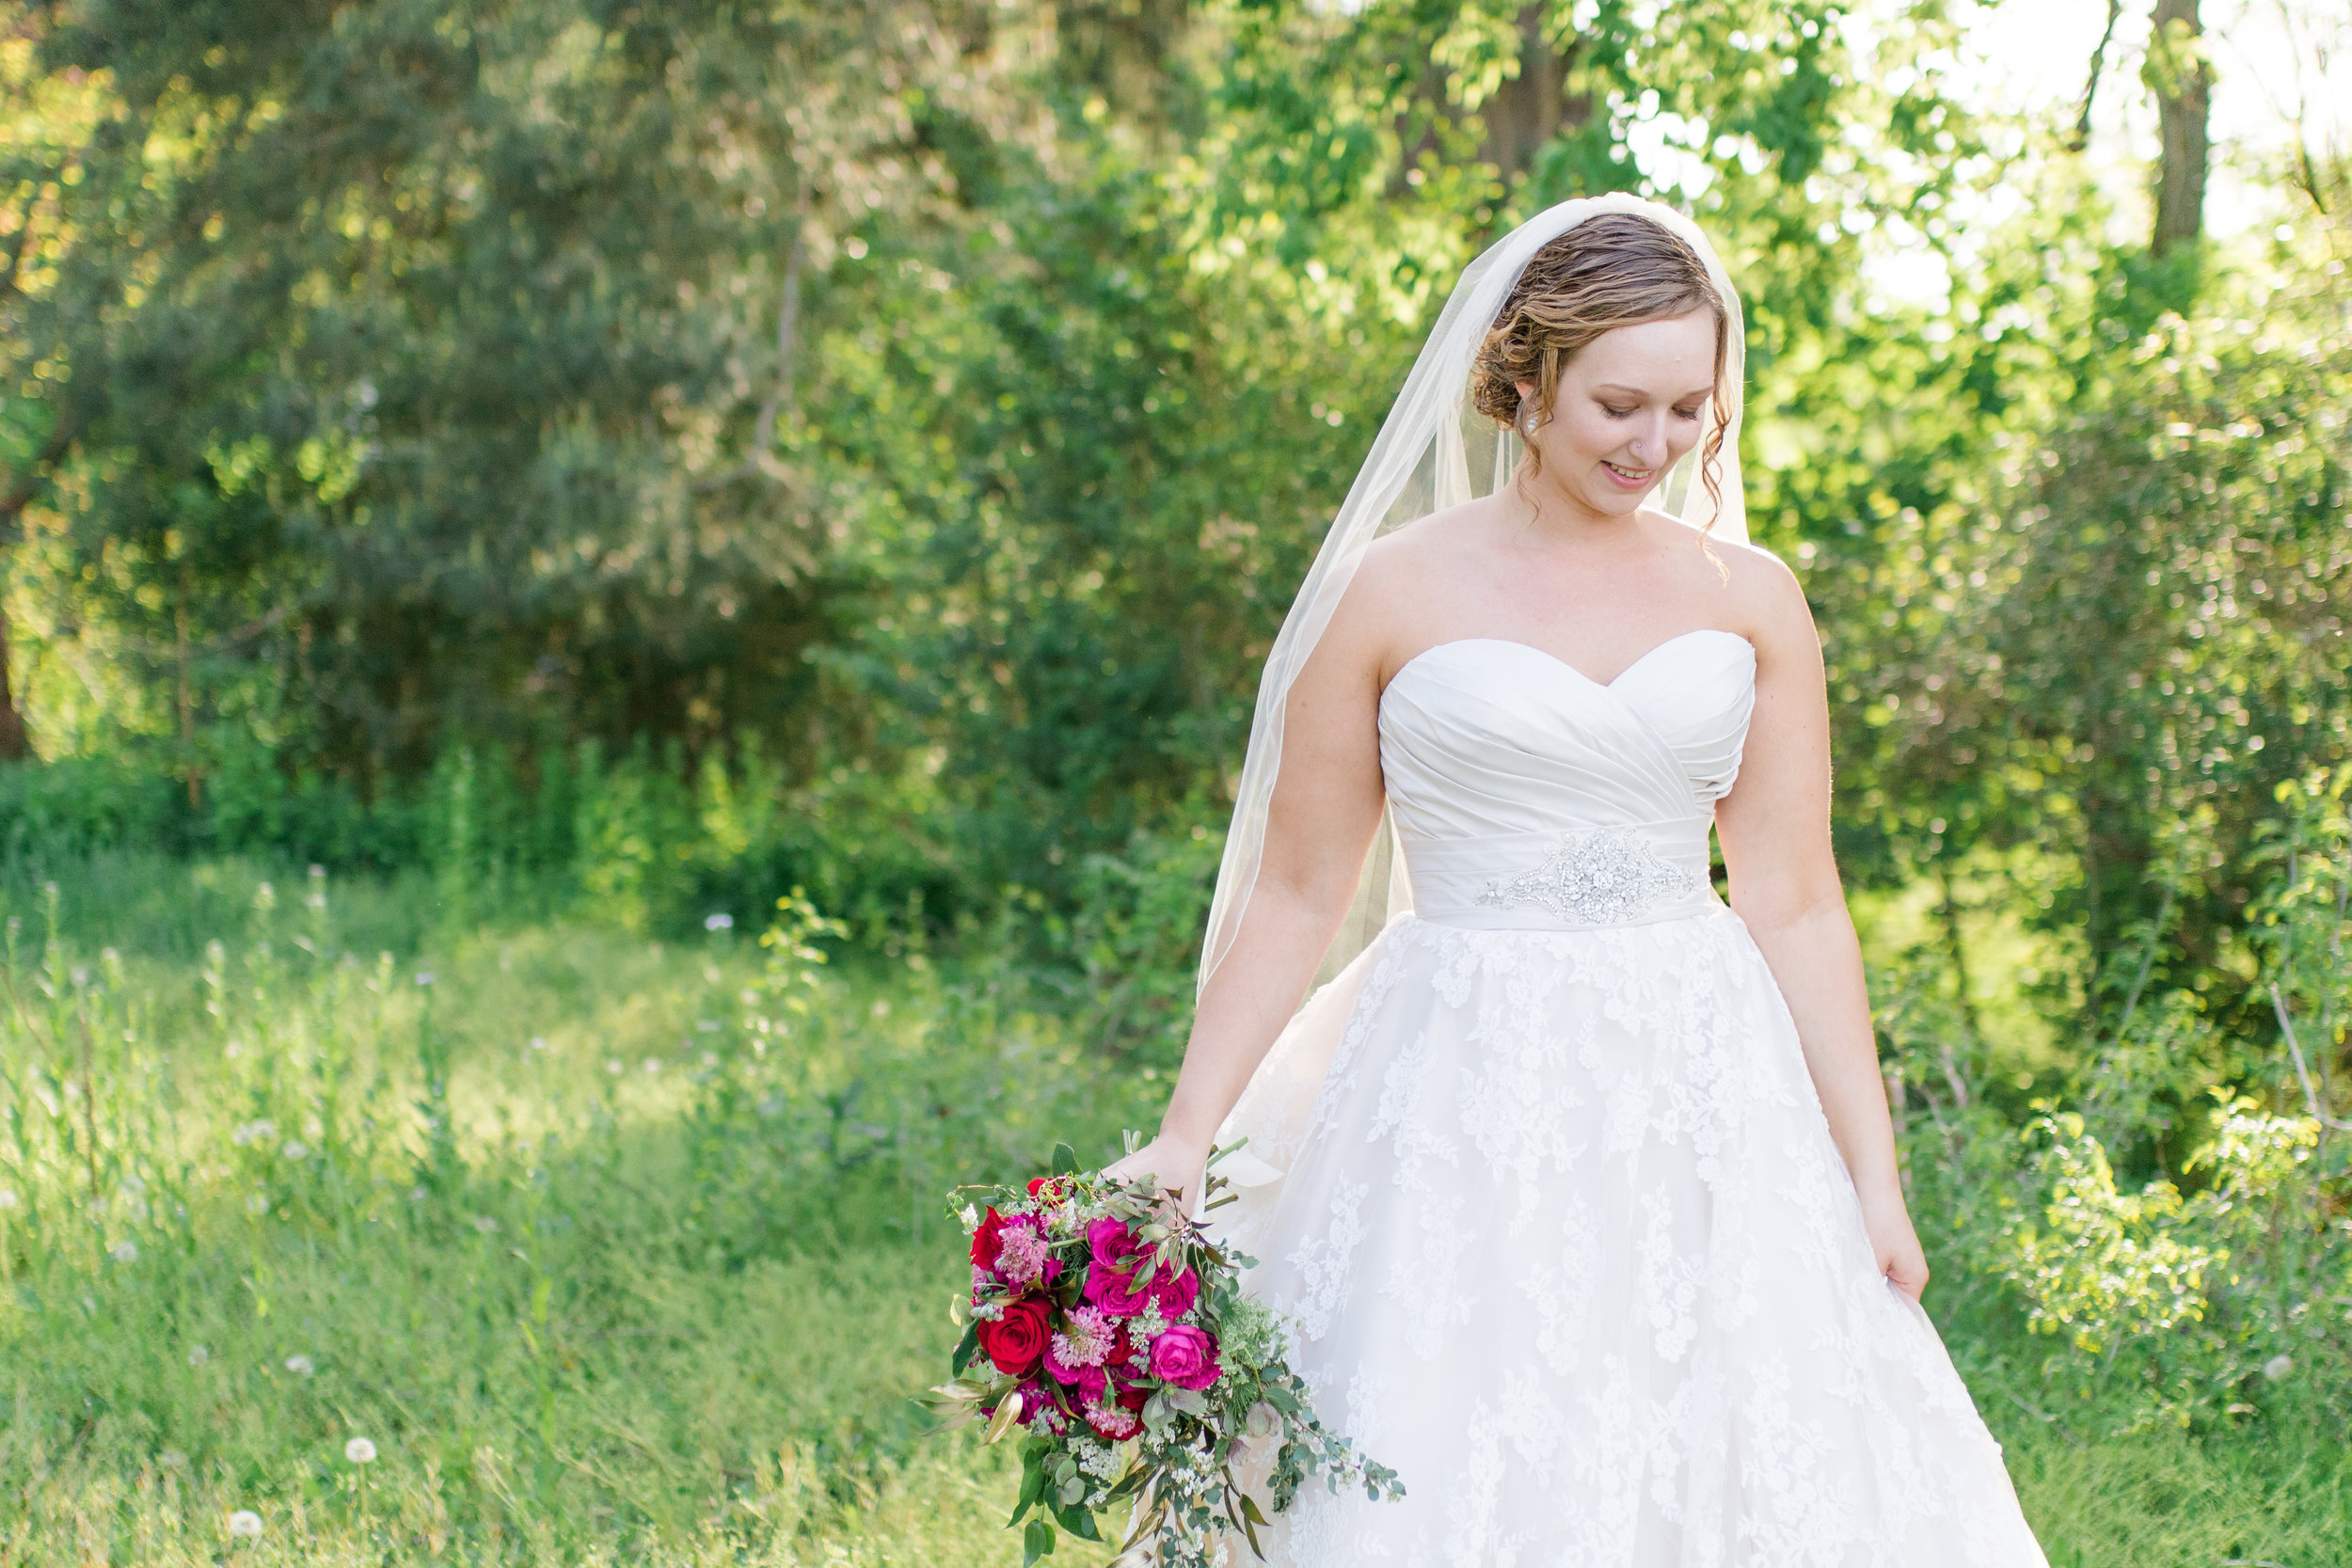 Our experience with SSP was one I will never forget. Savannah is a talented professional with a warm soul. From the day we reached out to her to photograph our intimate ceremony all the way to today, we think of her as a part of our family. Her turnaround time completely blew us way too and exceeded all of our expectations! - Natalie + Matthew